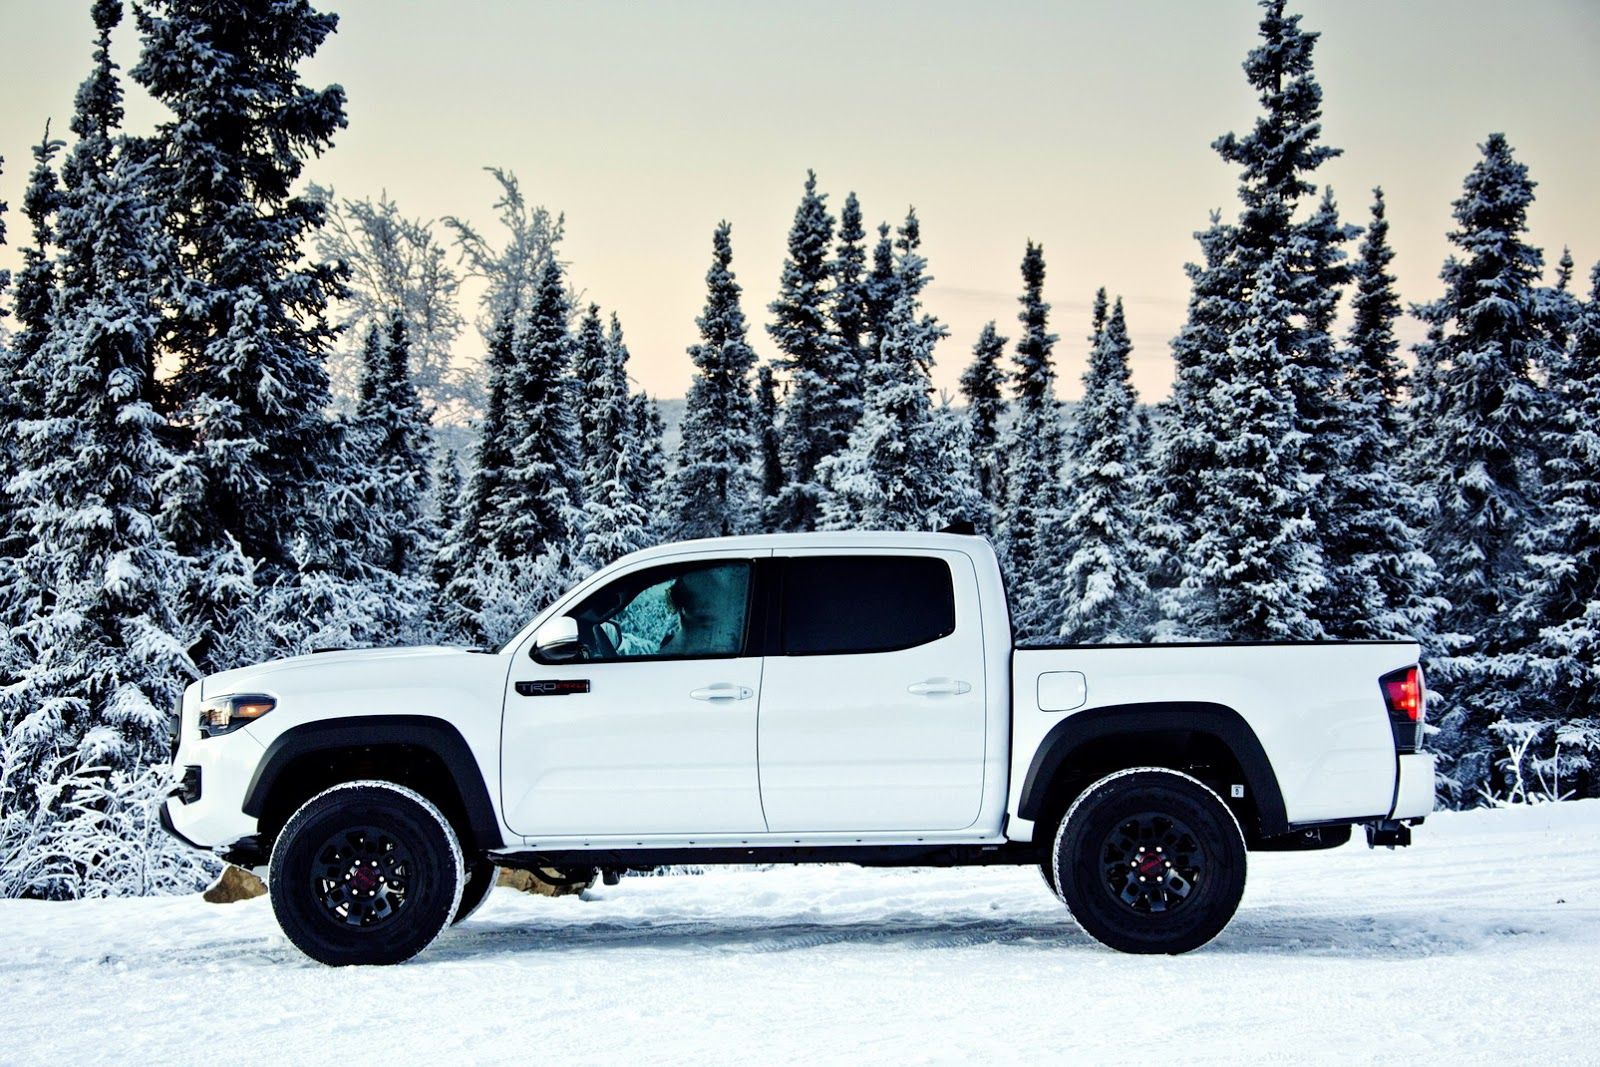 2017 toyota tacoma trd pro is the featured model the 2017 toyota tacoma trd pro white image is added in car pictures category by the author on aug